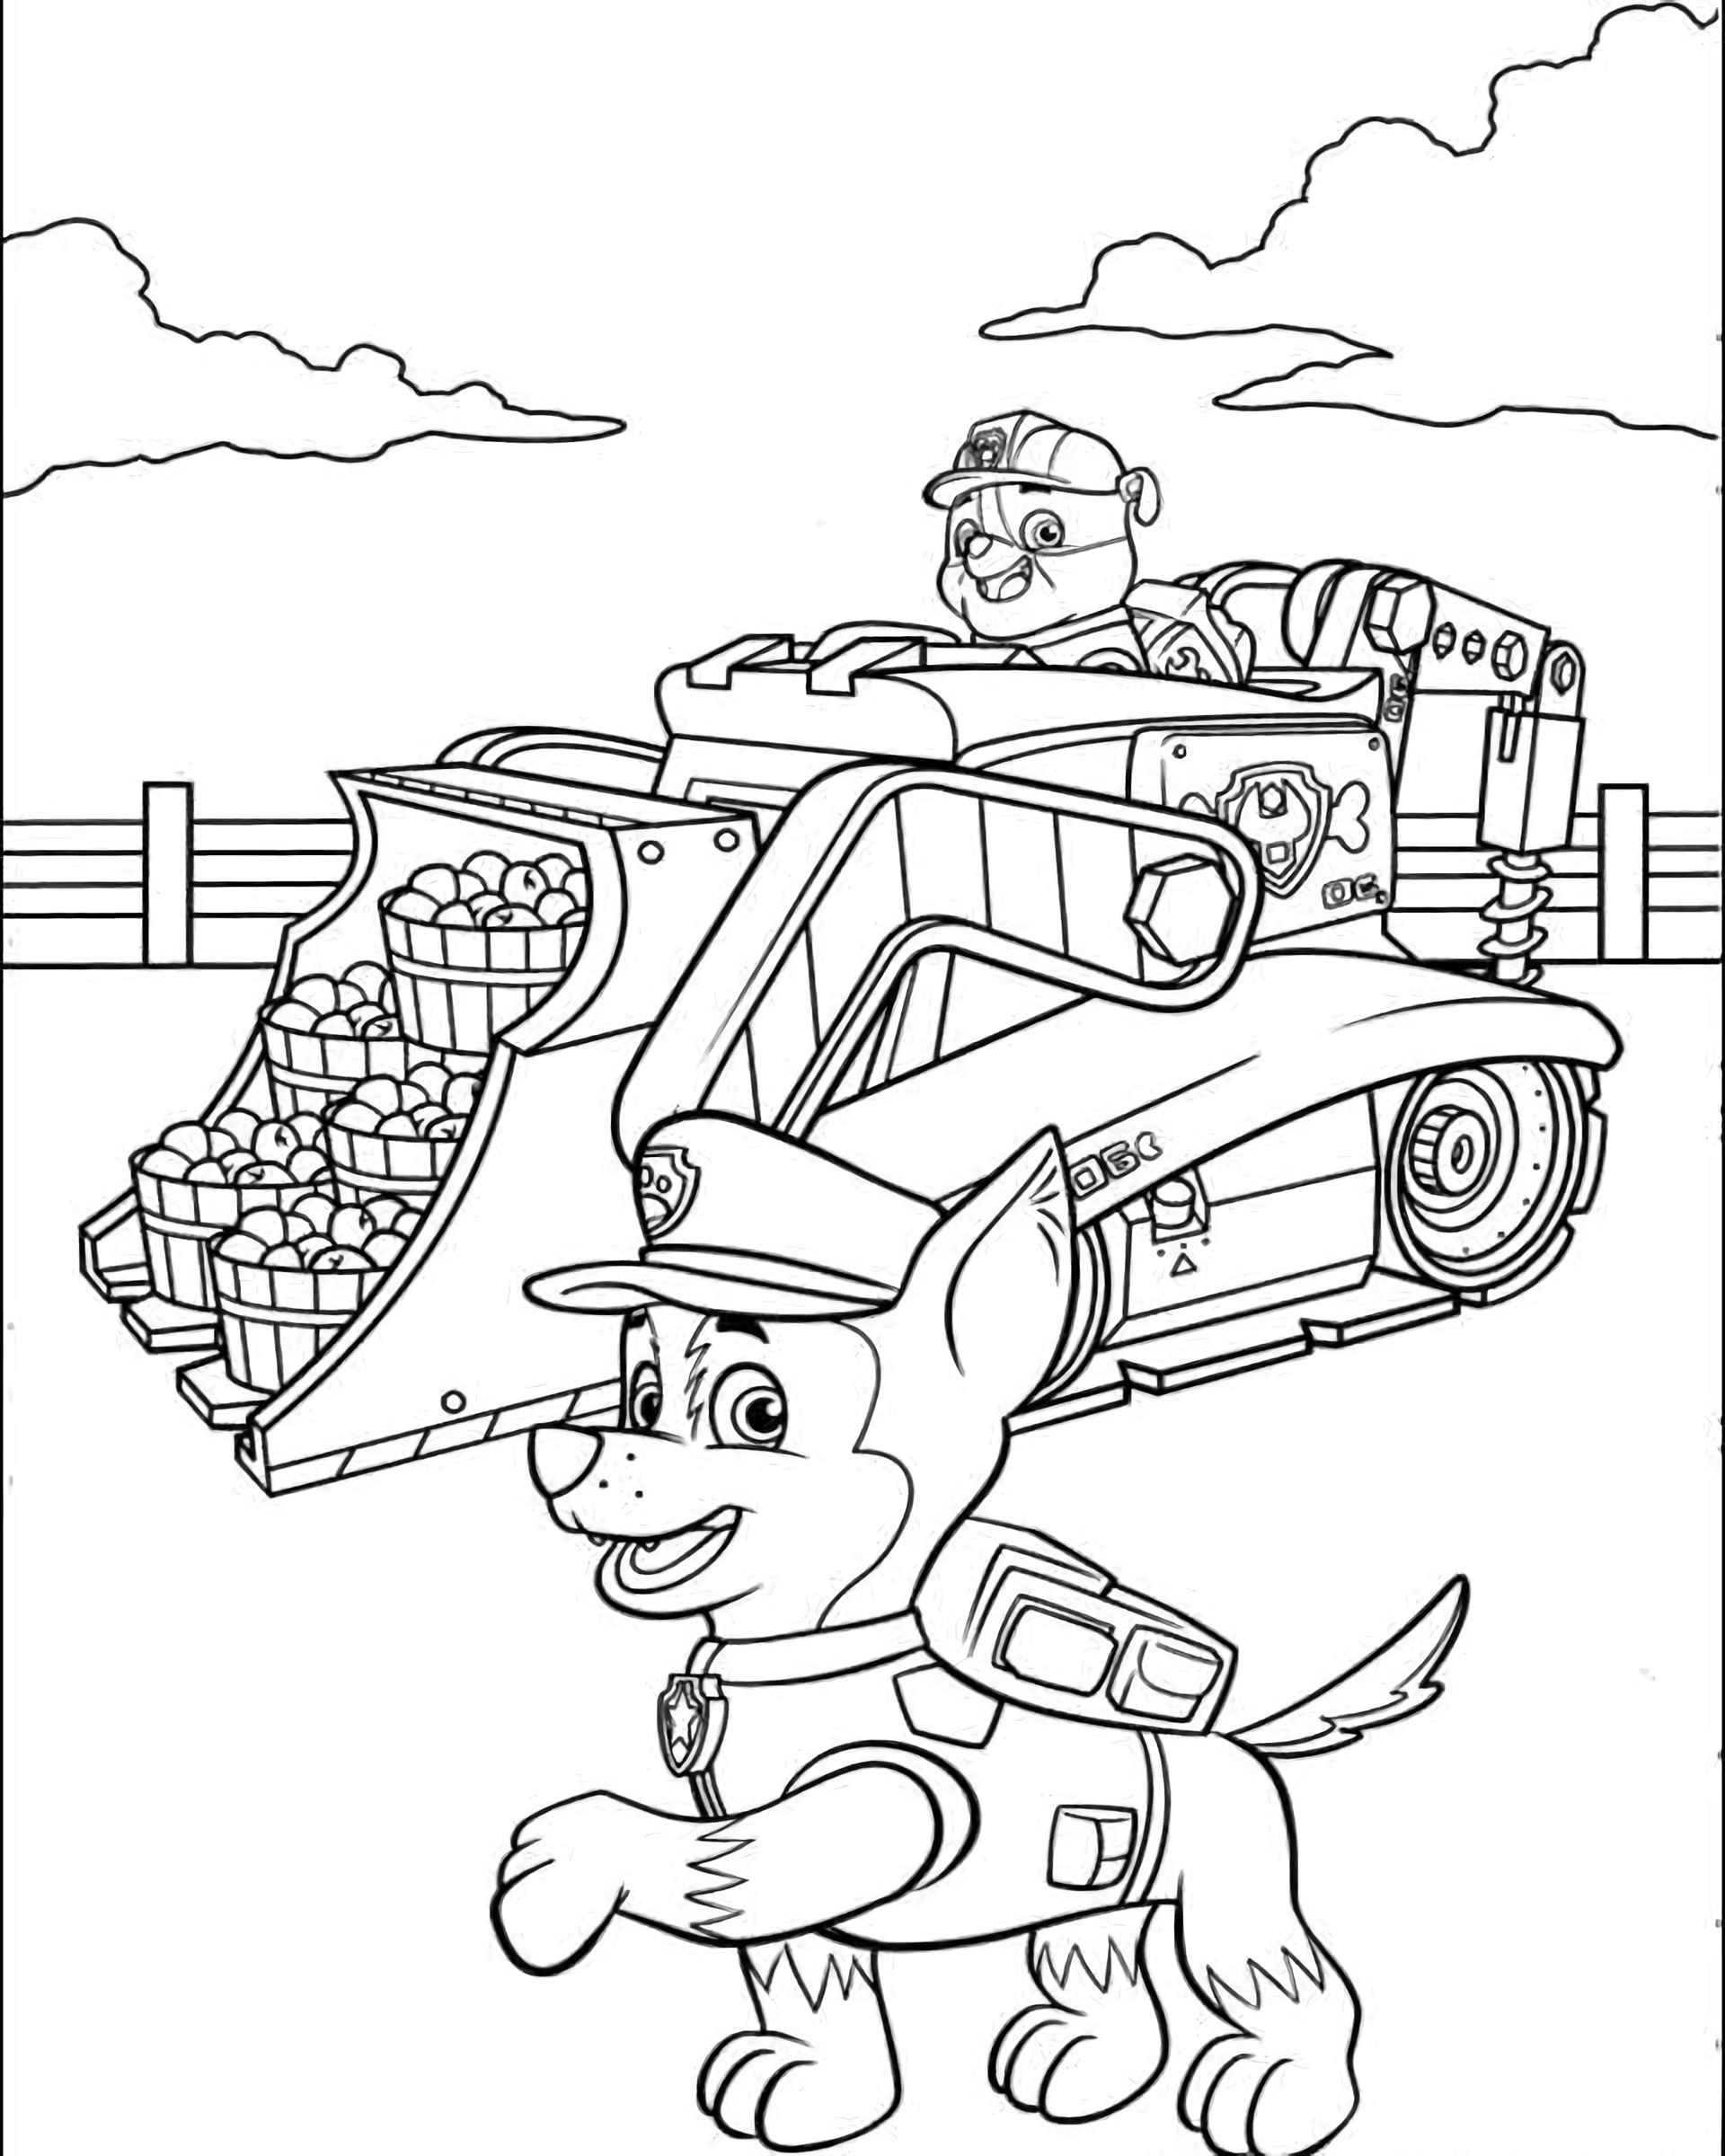 Chase And Paw Patrol Rubber Picking Apples